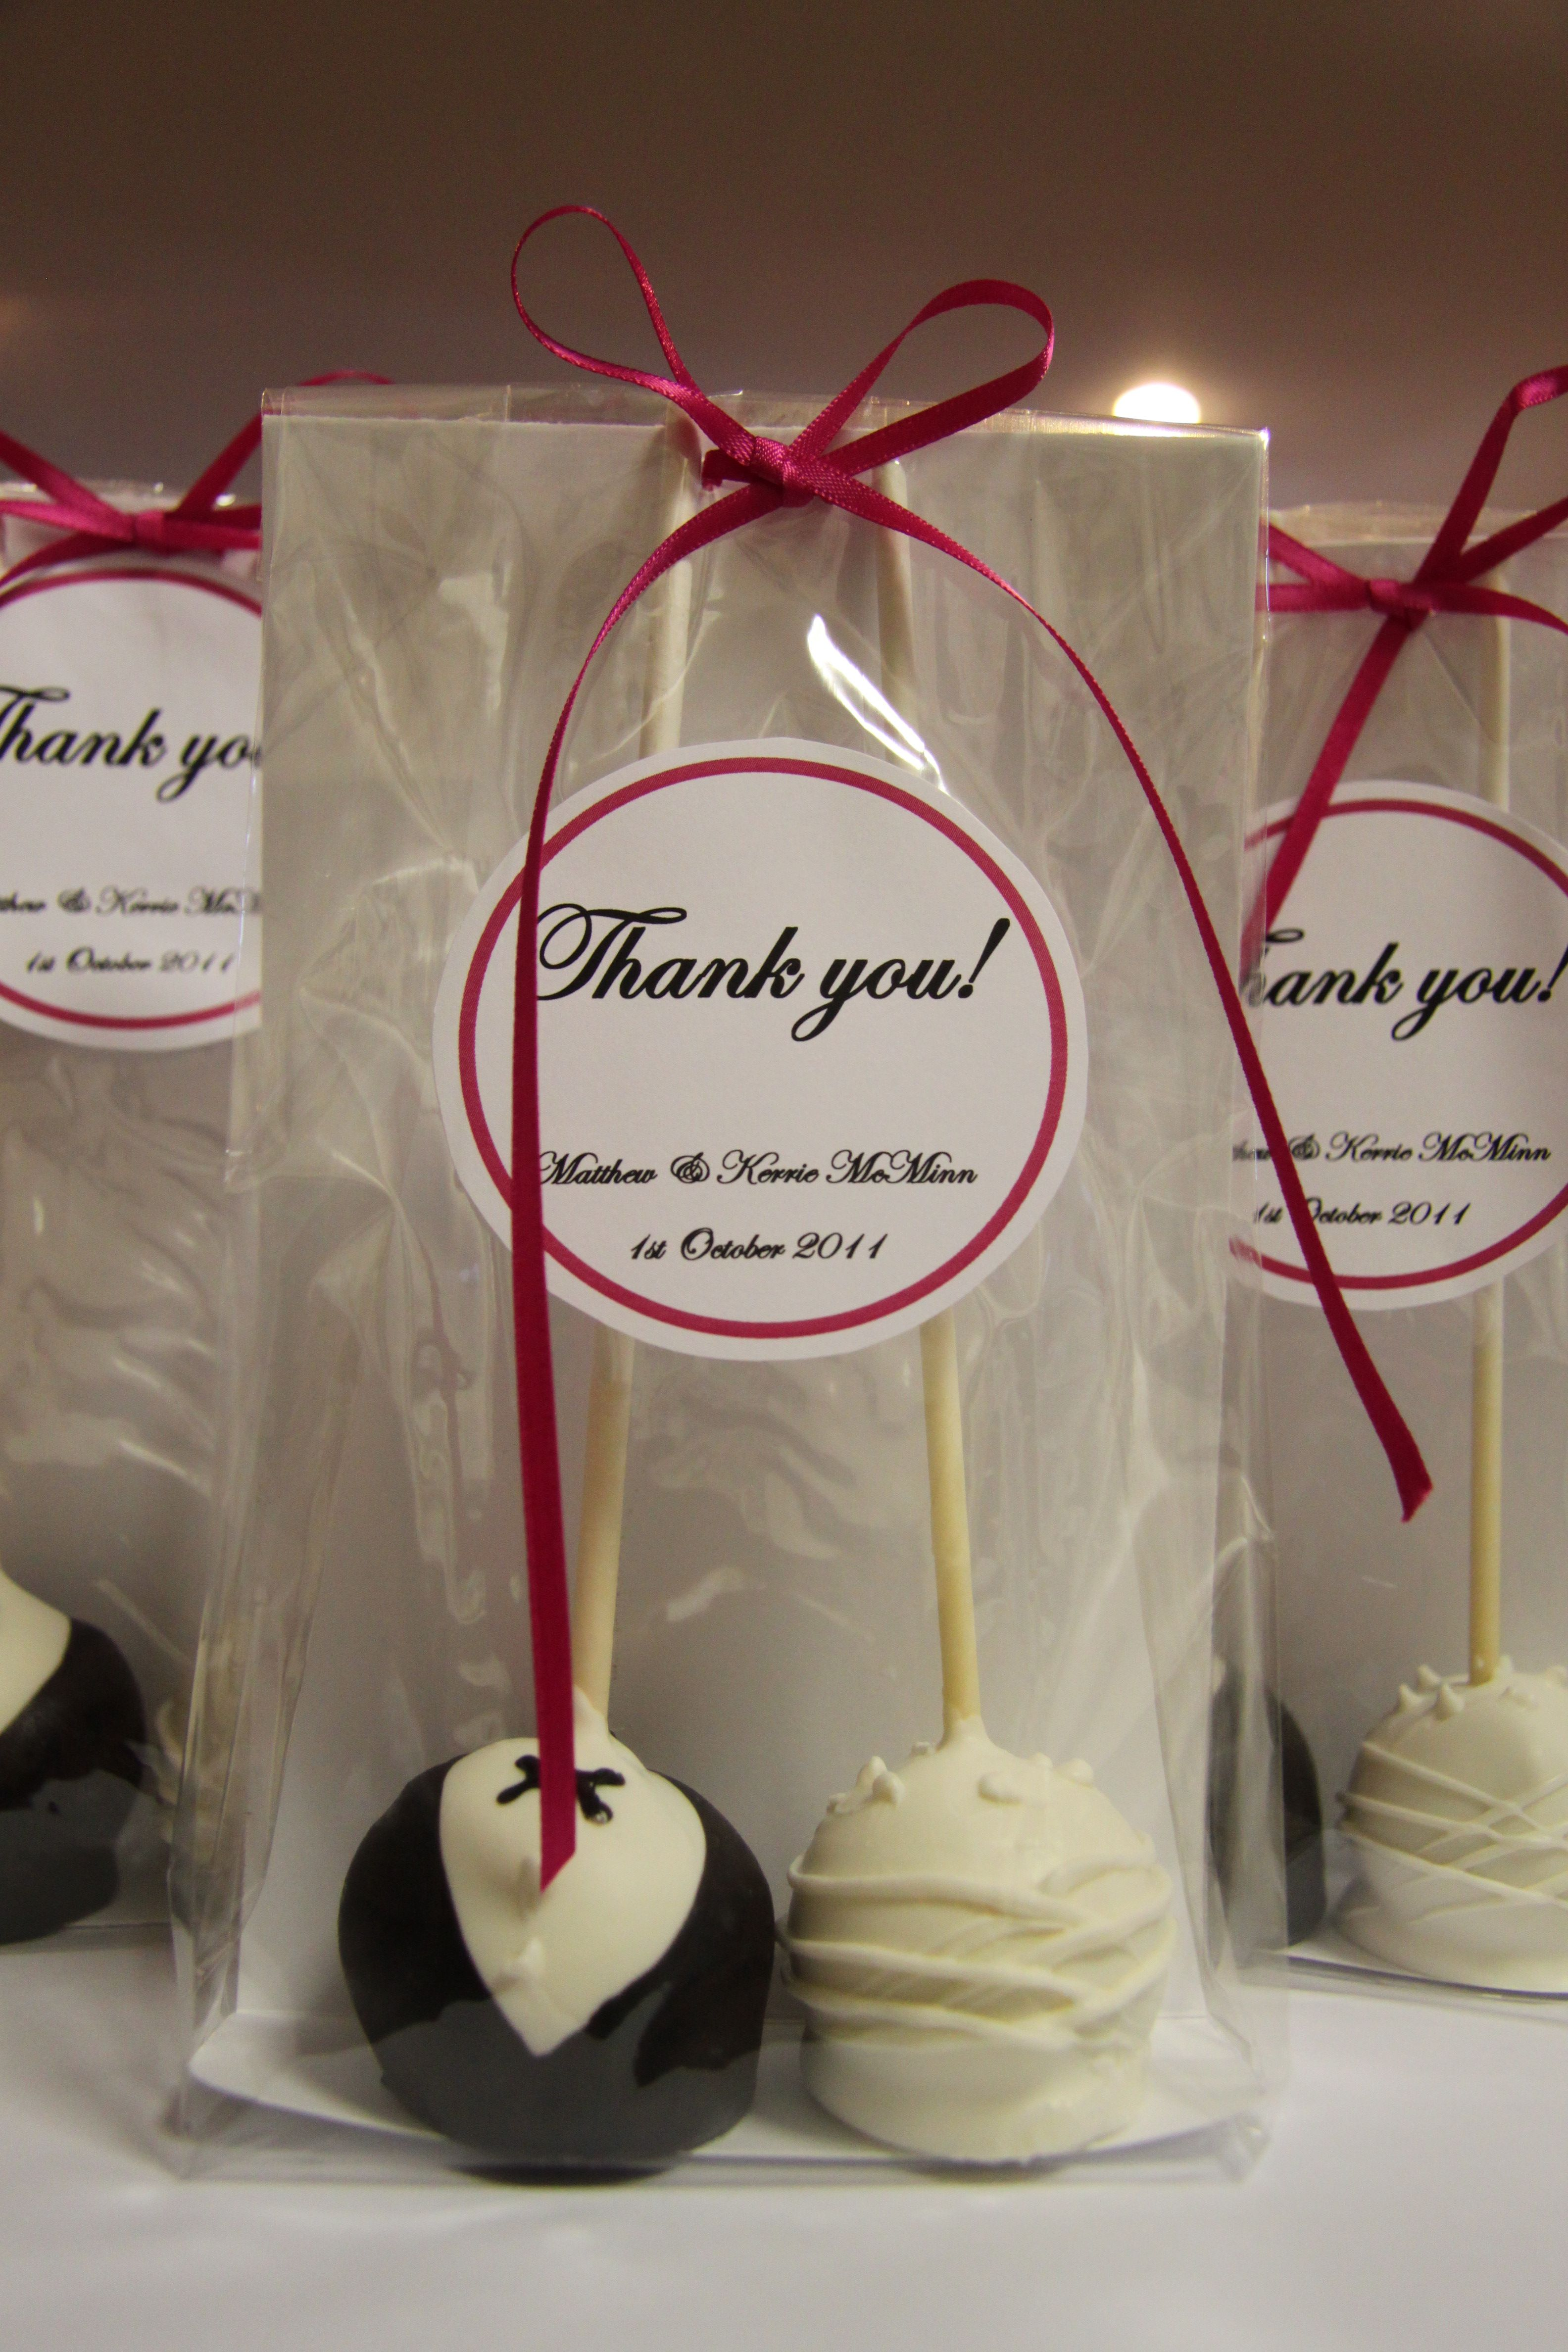 Wedding Favour Cake Pops Love It Right Down My Street Lol Wedding Cake Pops Rustic Wedding Favors Wedding Gifts For Guests